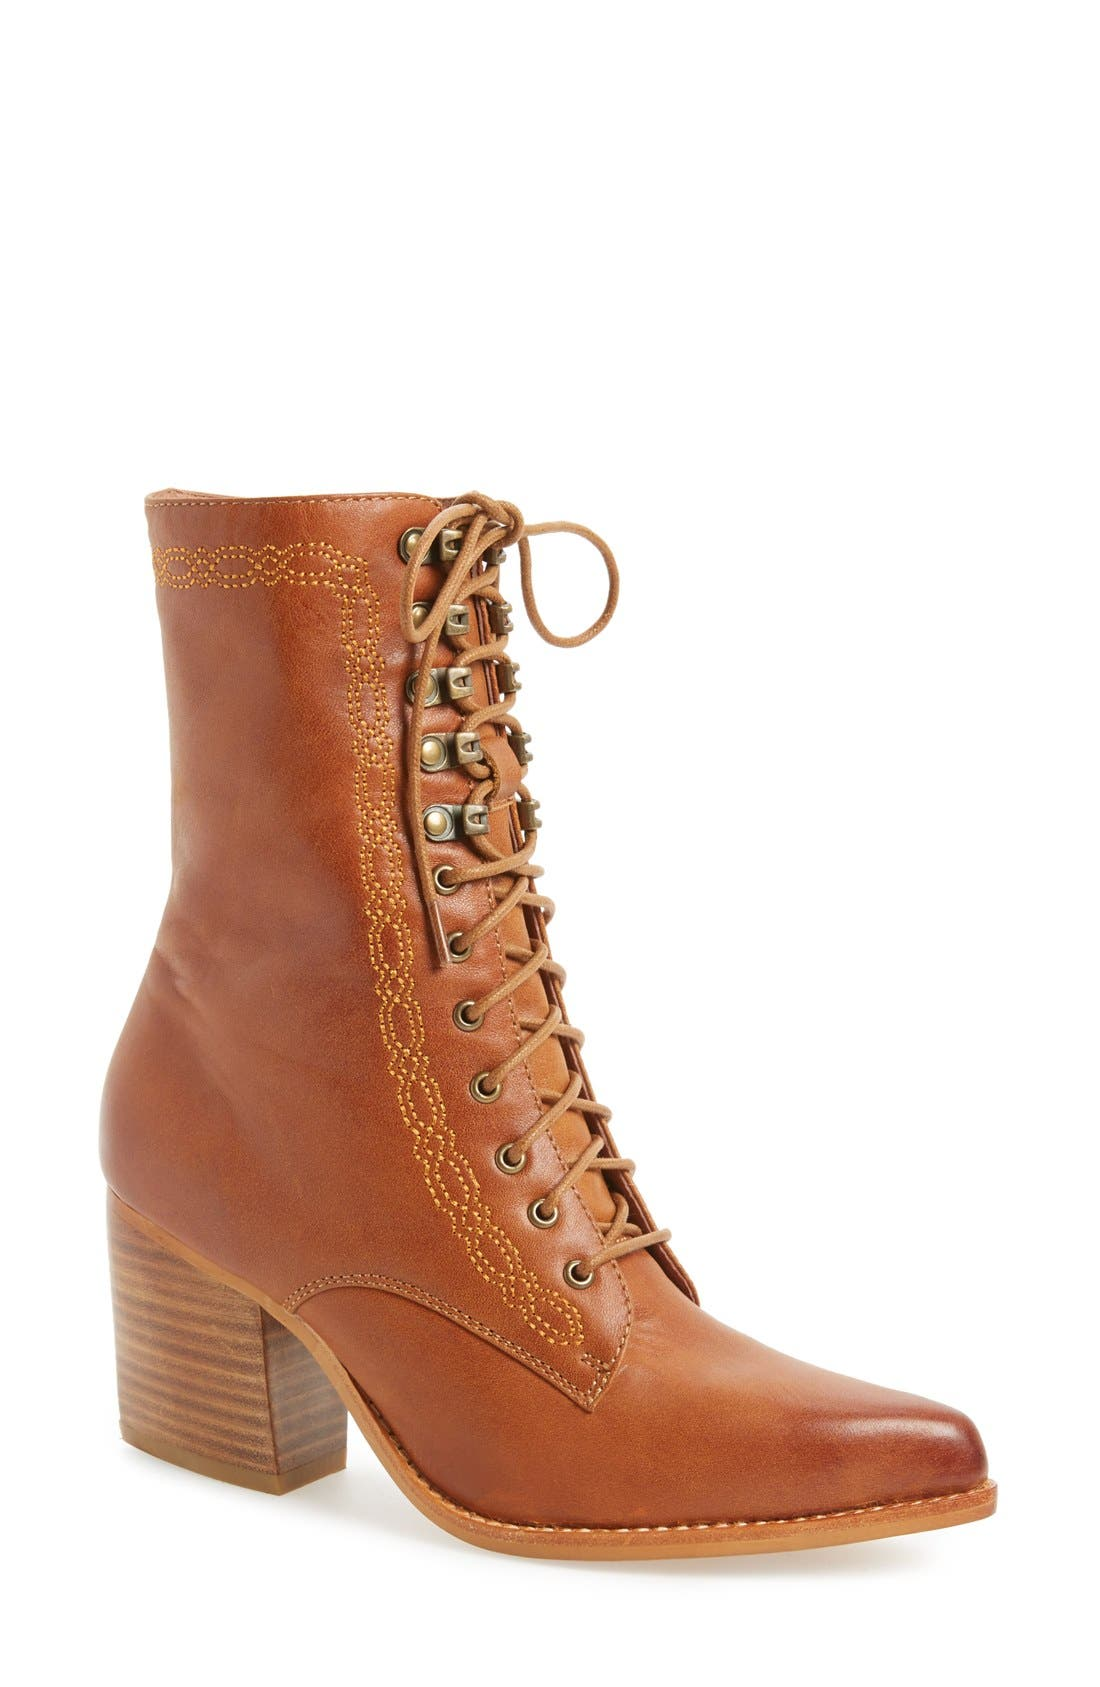 Main Image - Jeffrey Campbell 'Boothe' Leather Boot (Women)